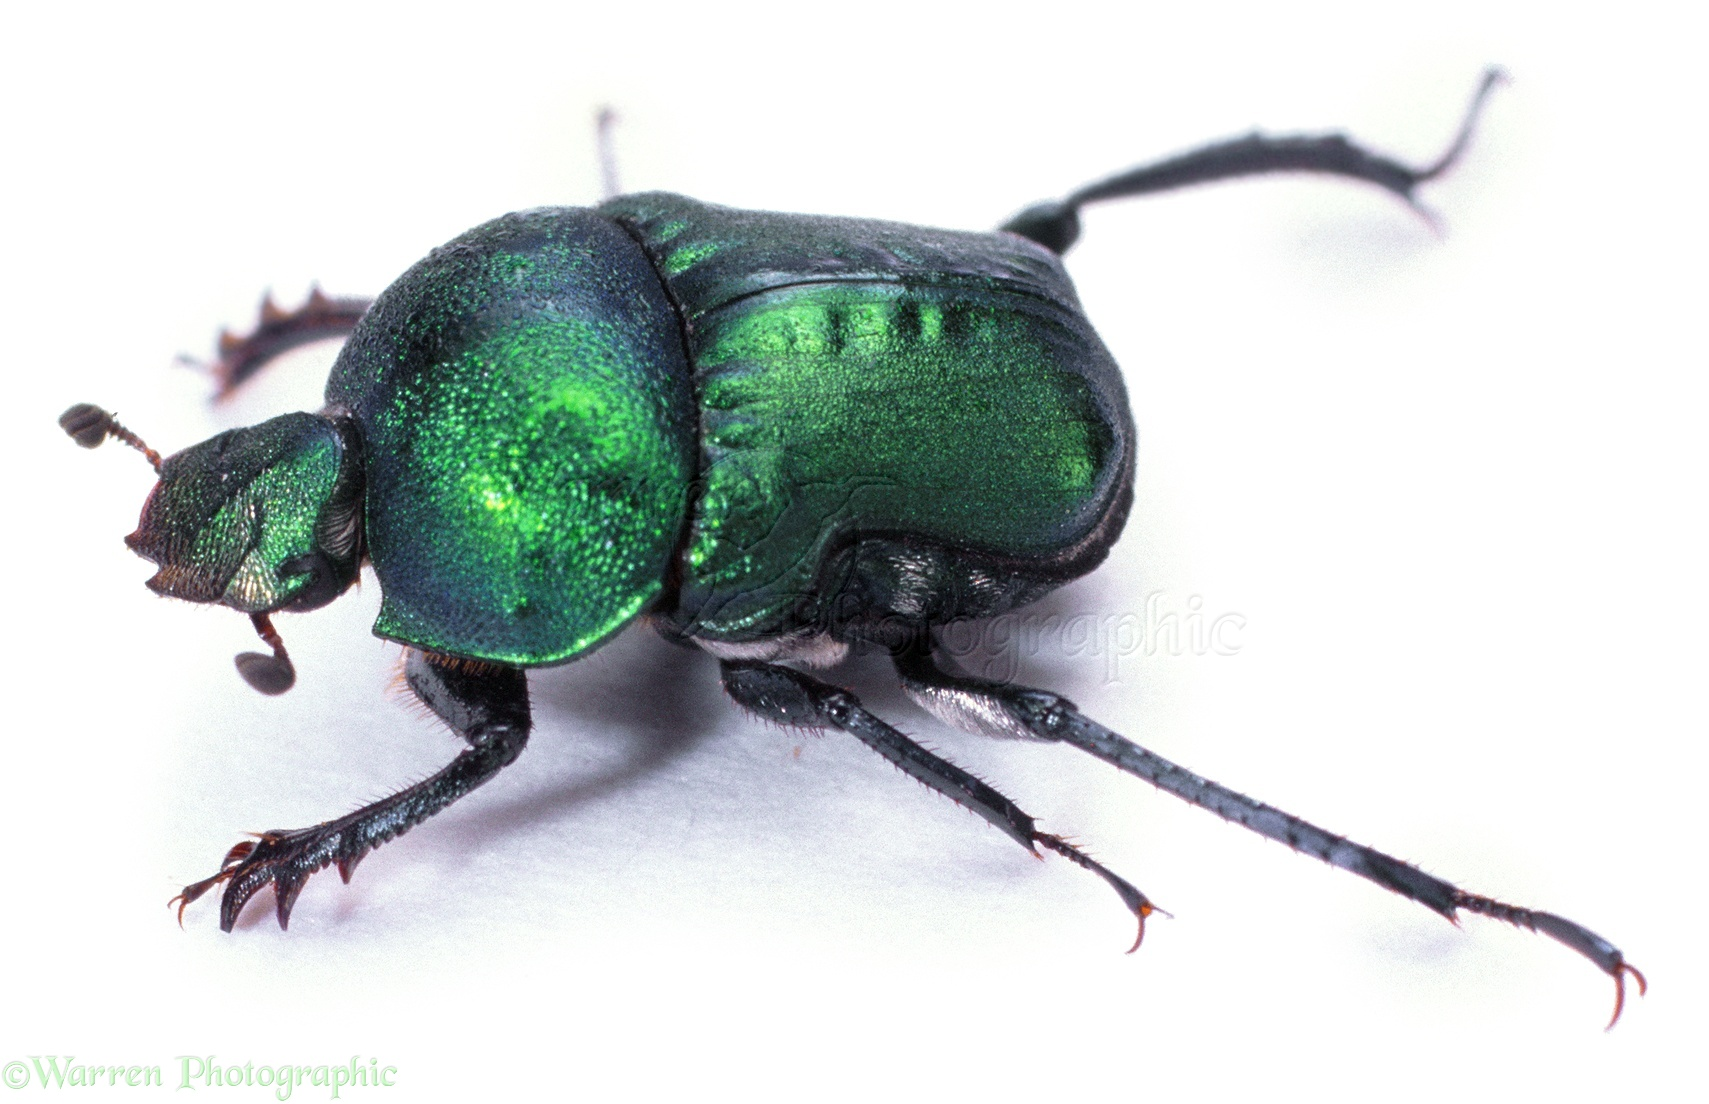 Green Dung Beetle - Bing images Q The Dung Beetle